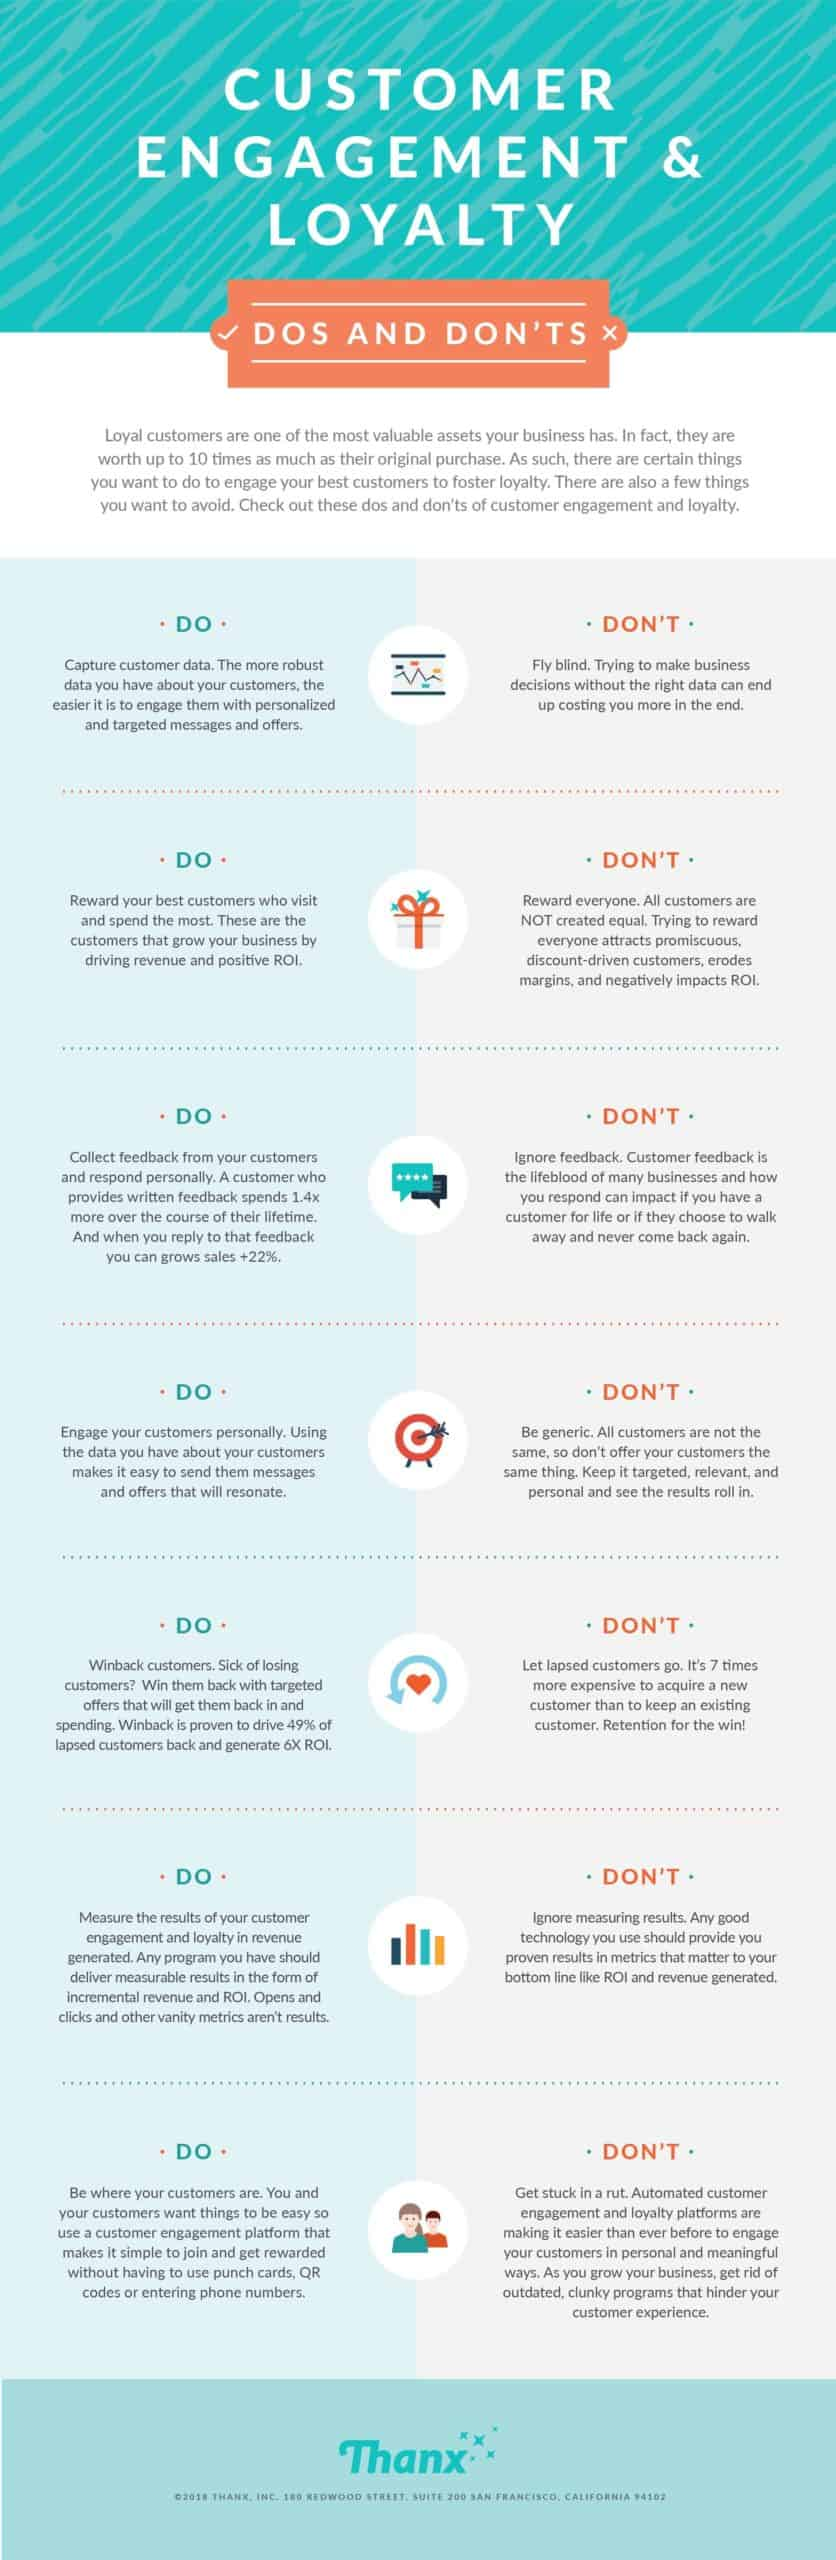 Customer Engagement tips infographic